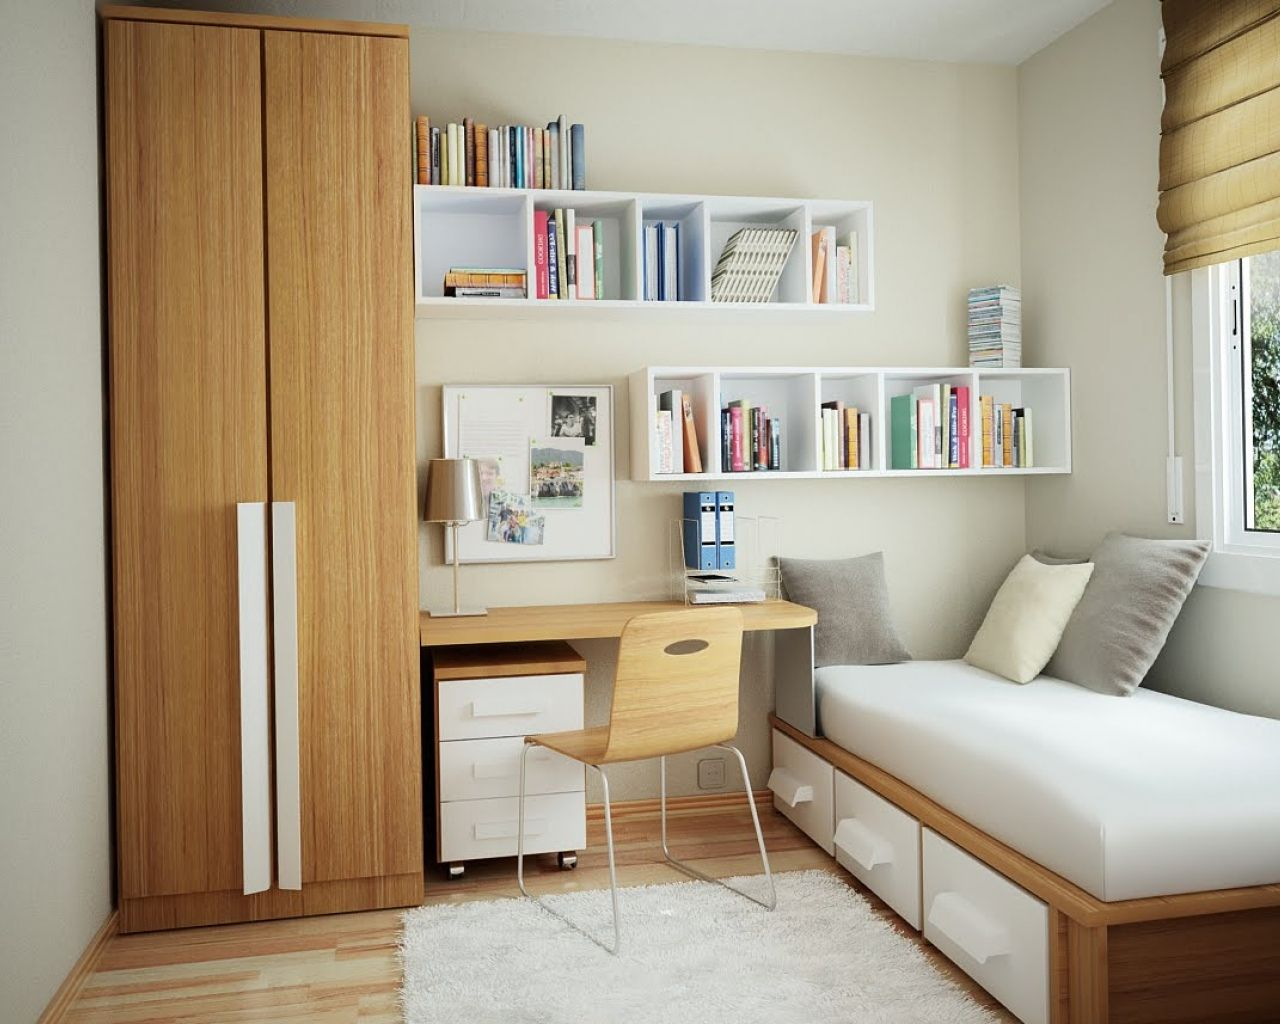 10×12 bedroom layout google search new home ideas pinterest